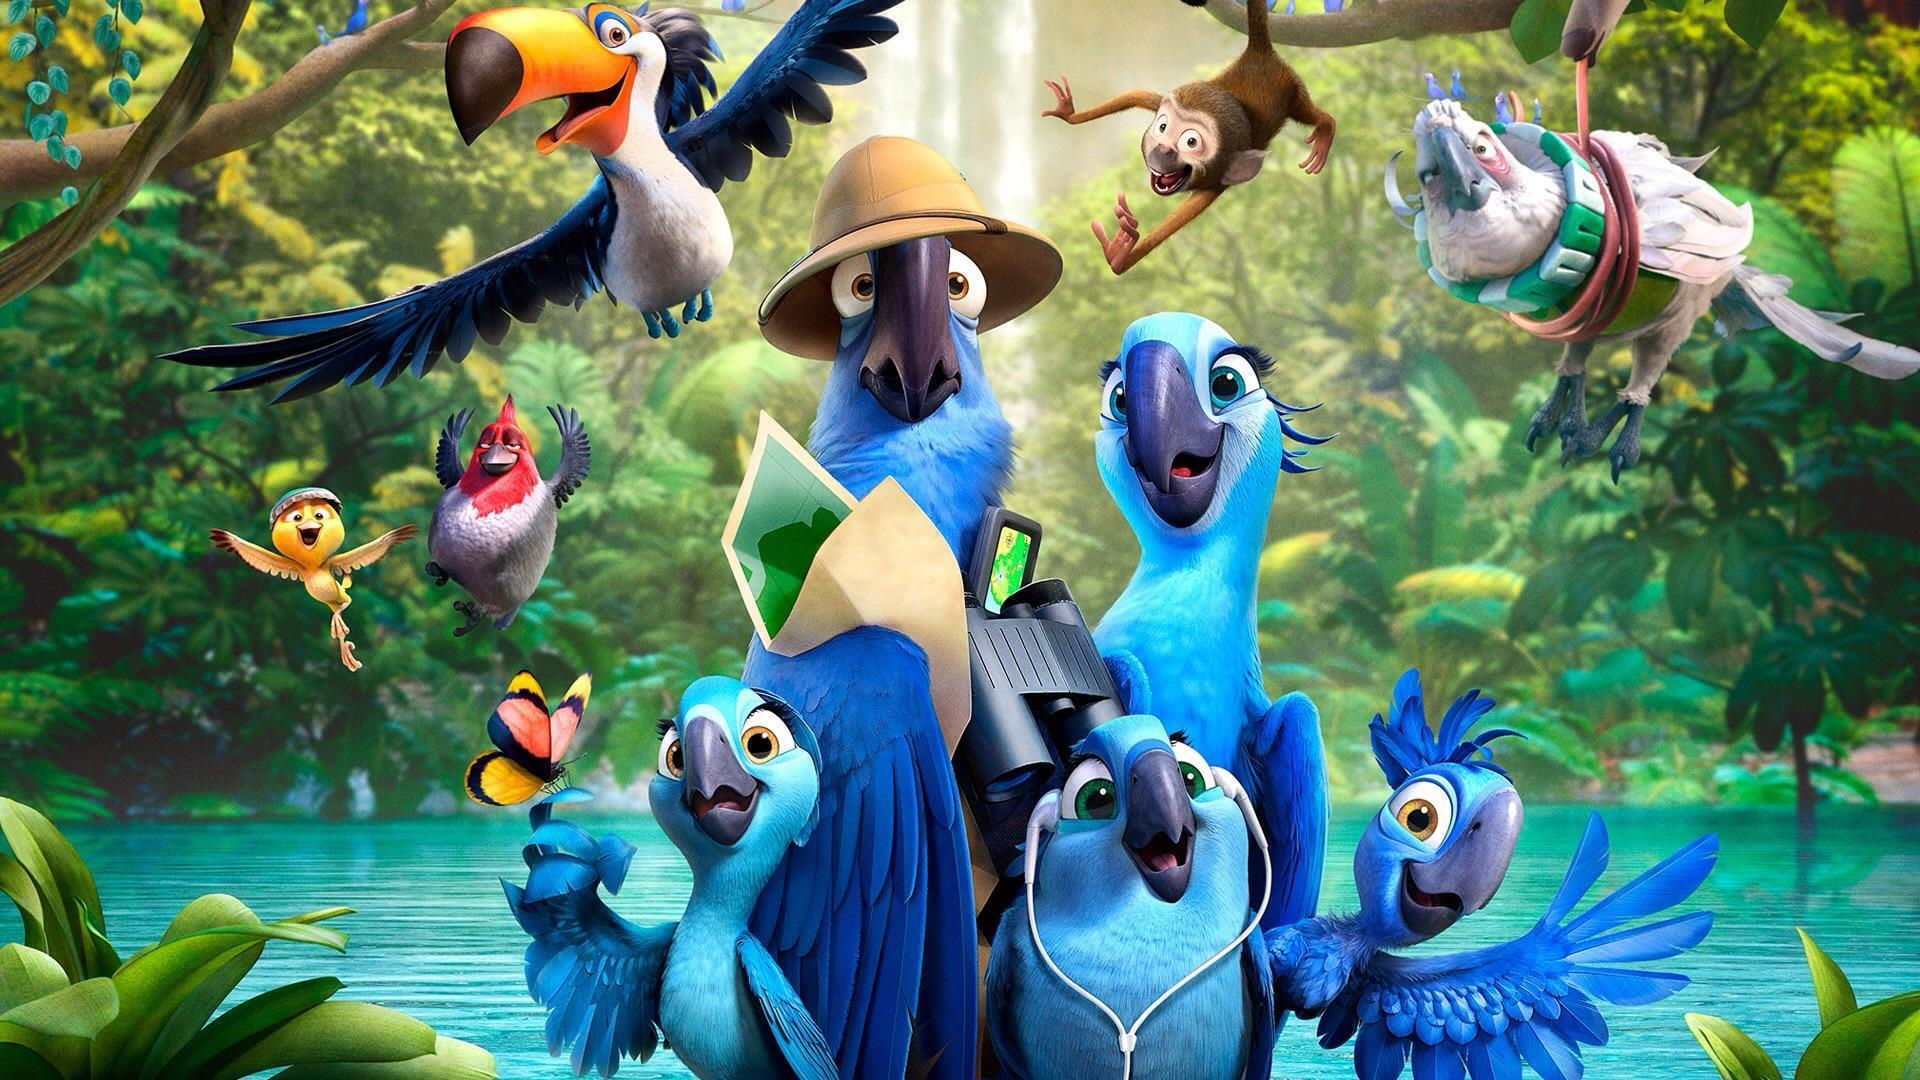 Did you enjoy the movie Rio 2?